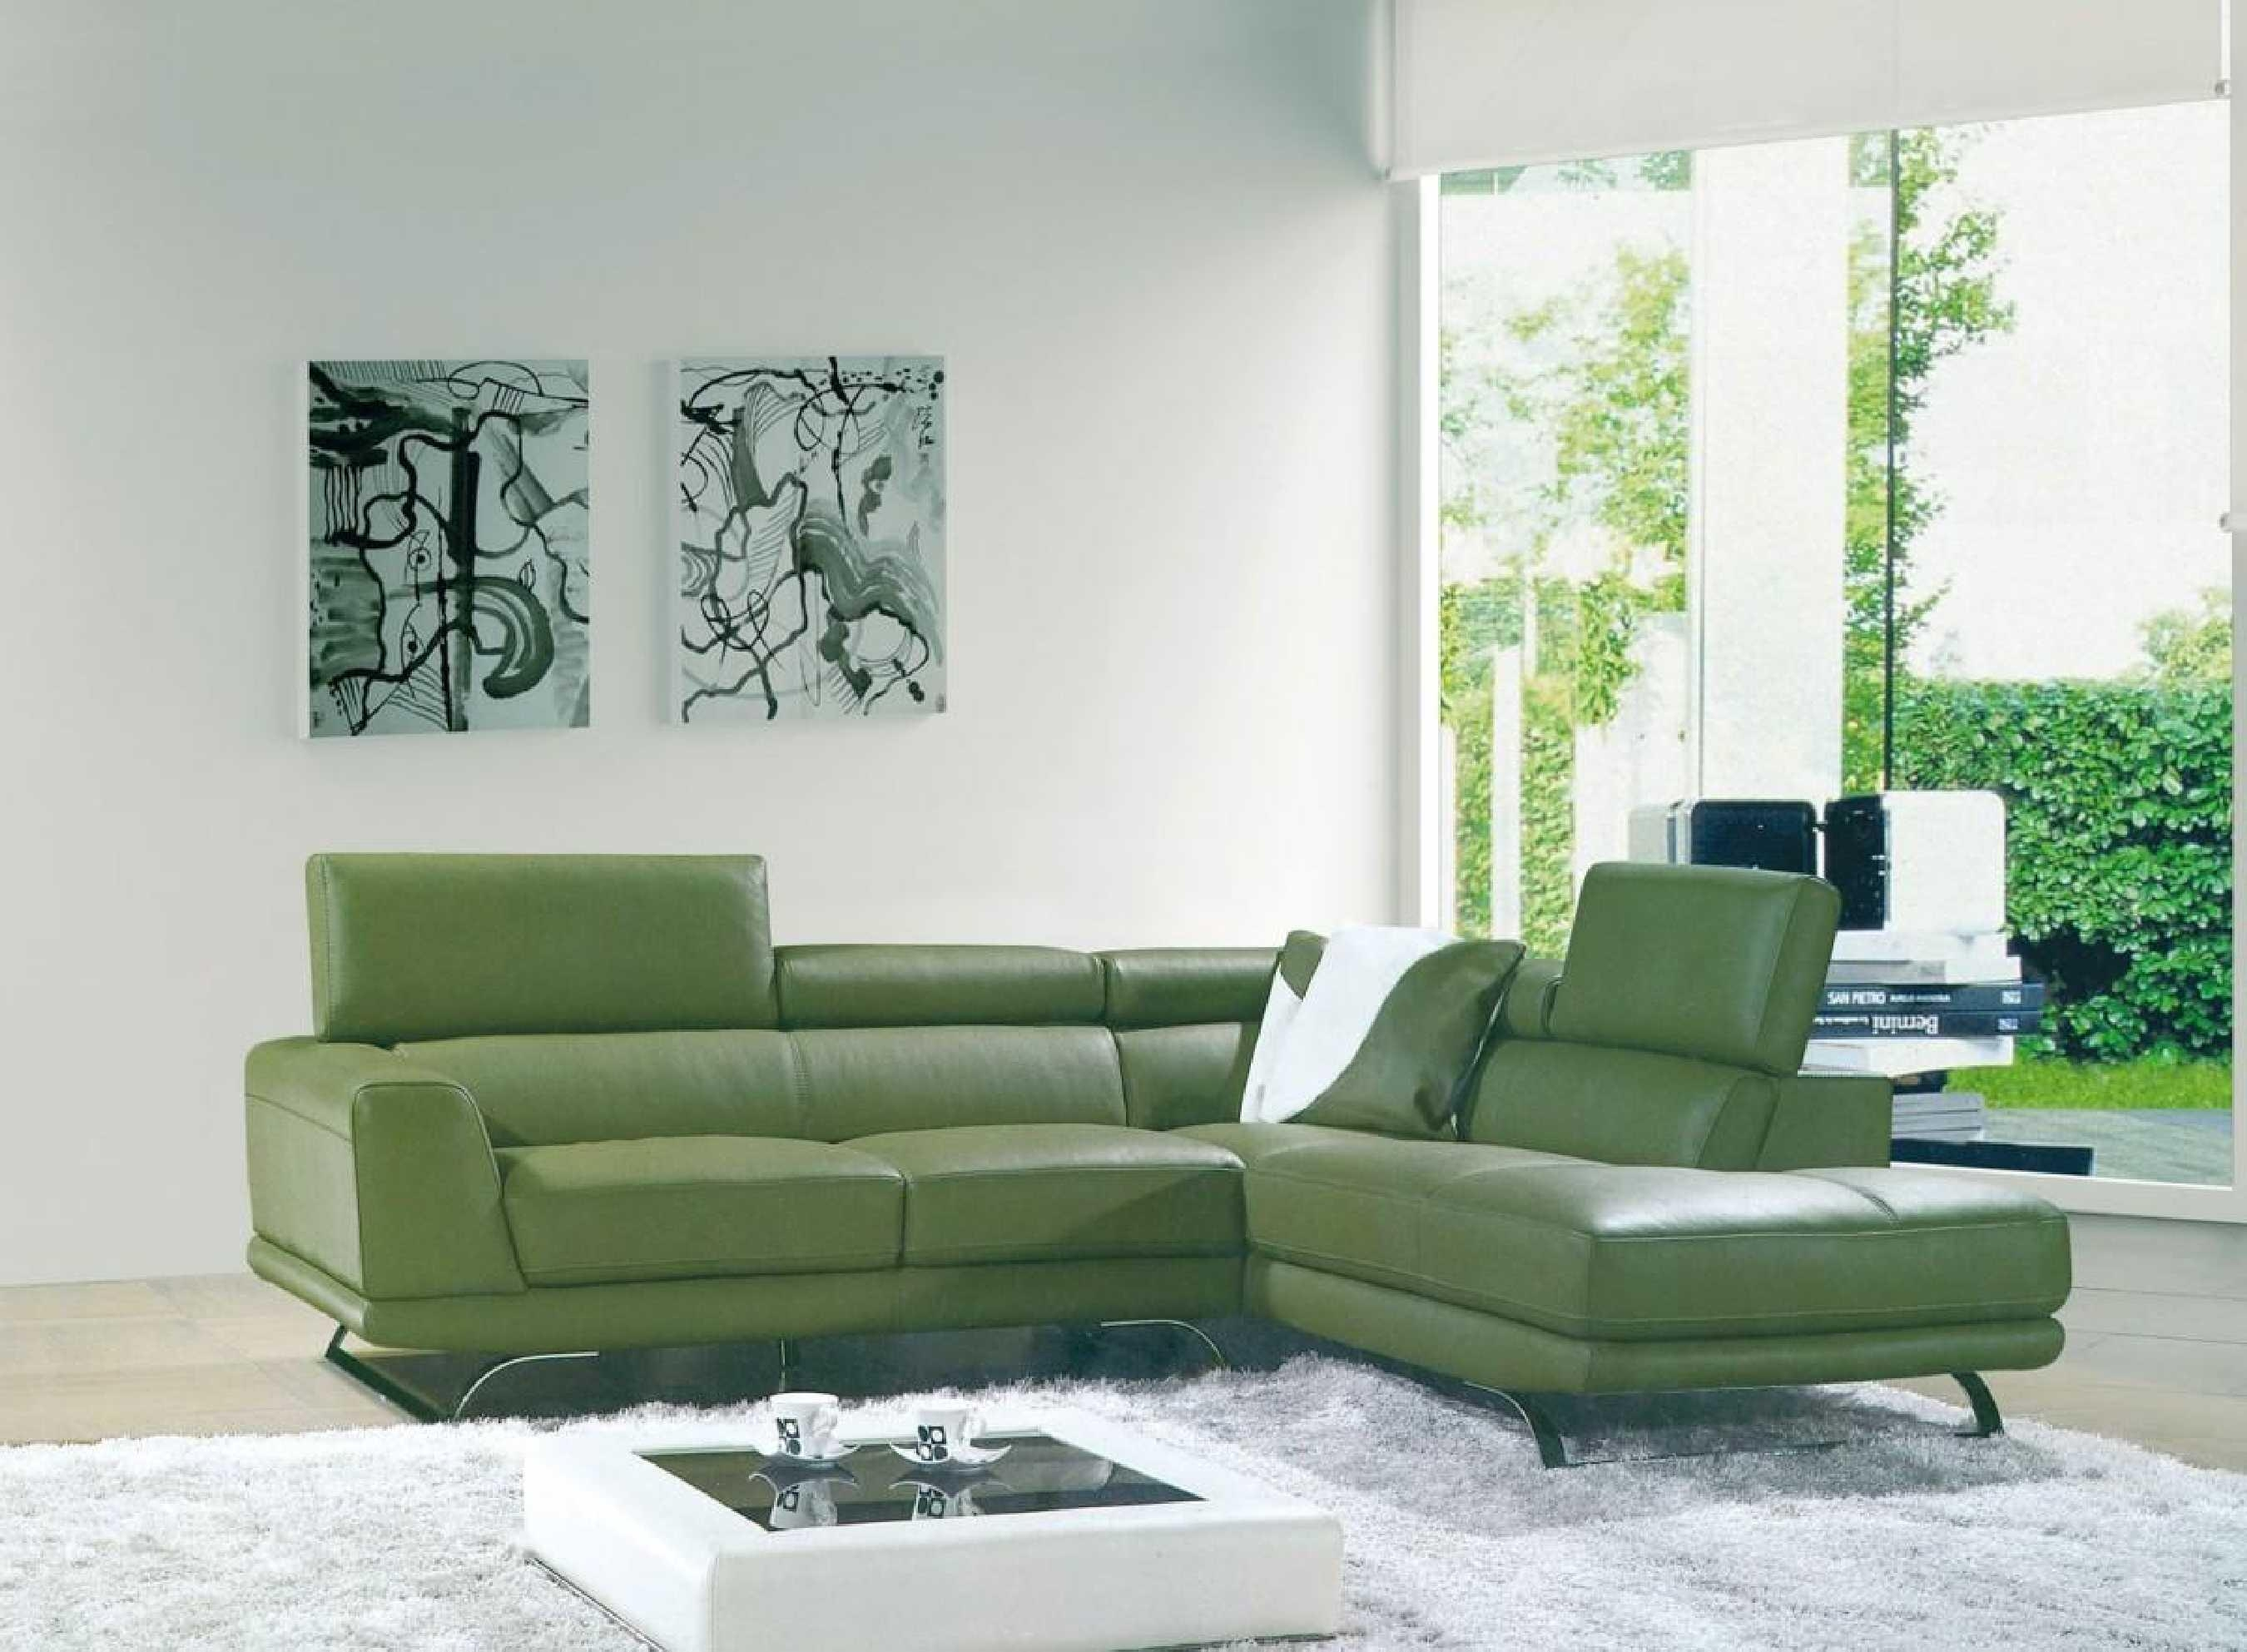 2017 16 Green Leather Sofa On Vig Furniture 8012 Green Bonded inside Green Leather Sectional Sofas